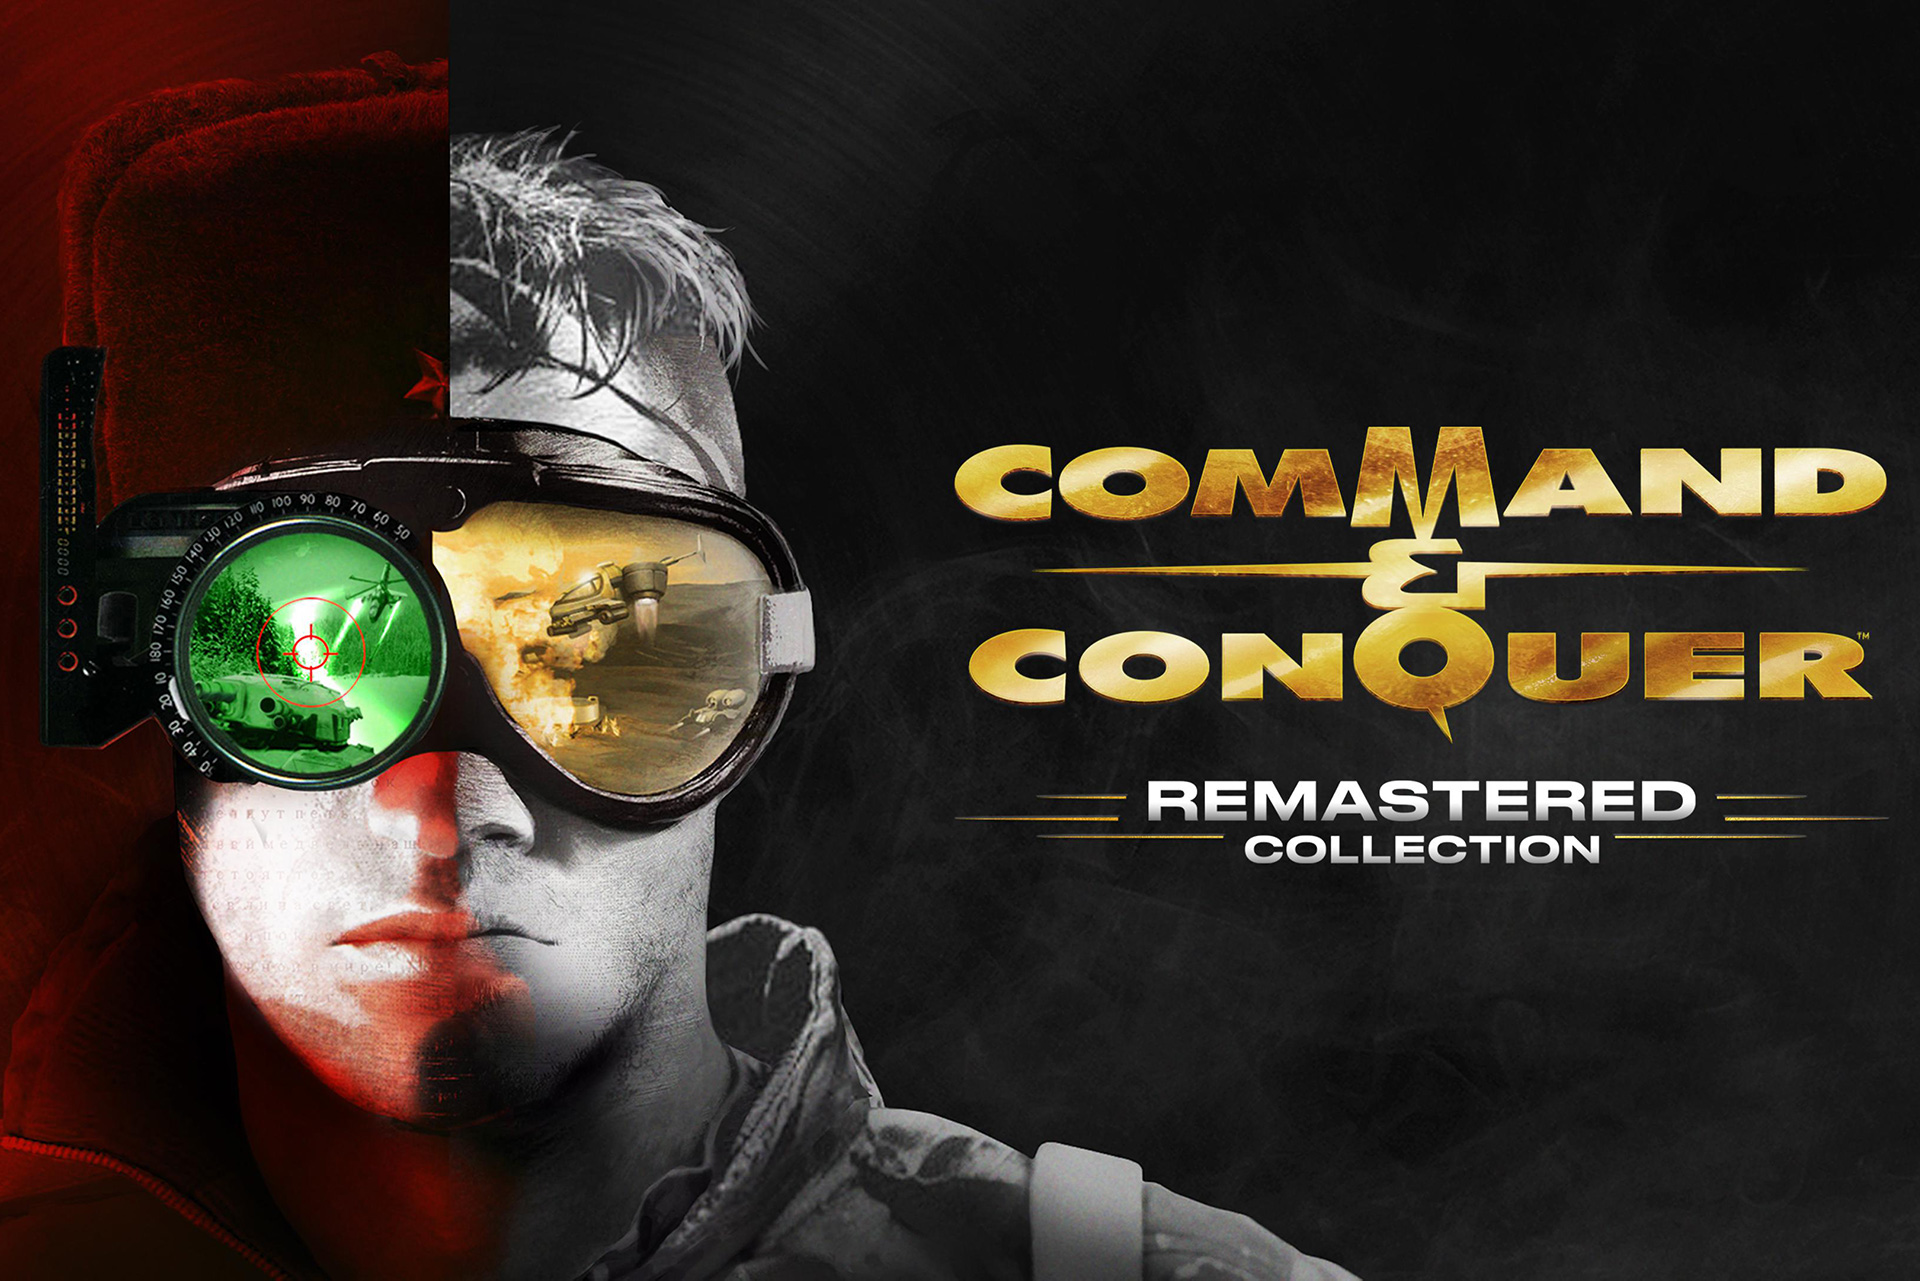 Command & Conquer Remastered Collection Now Released featured image